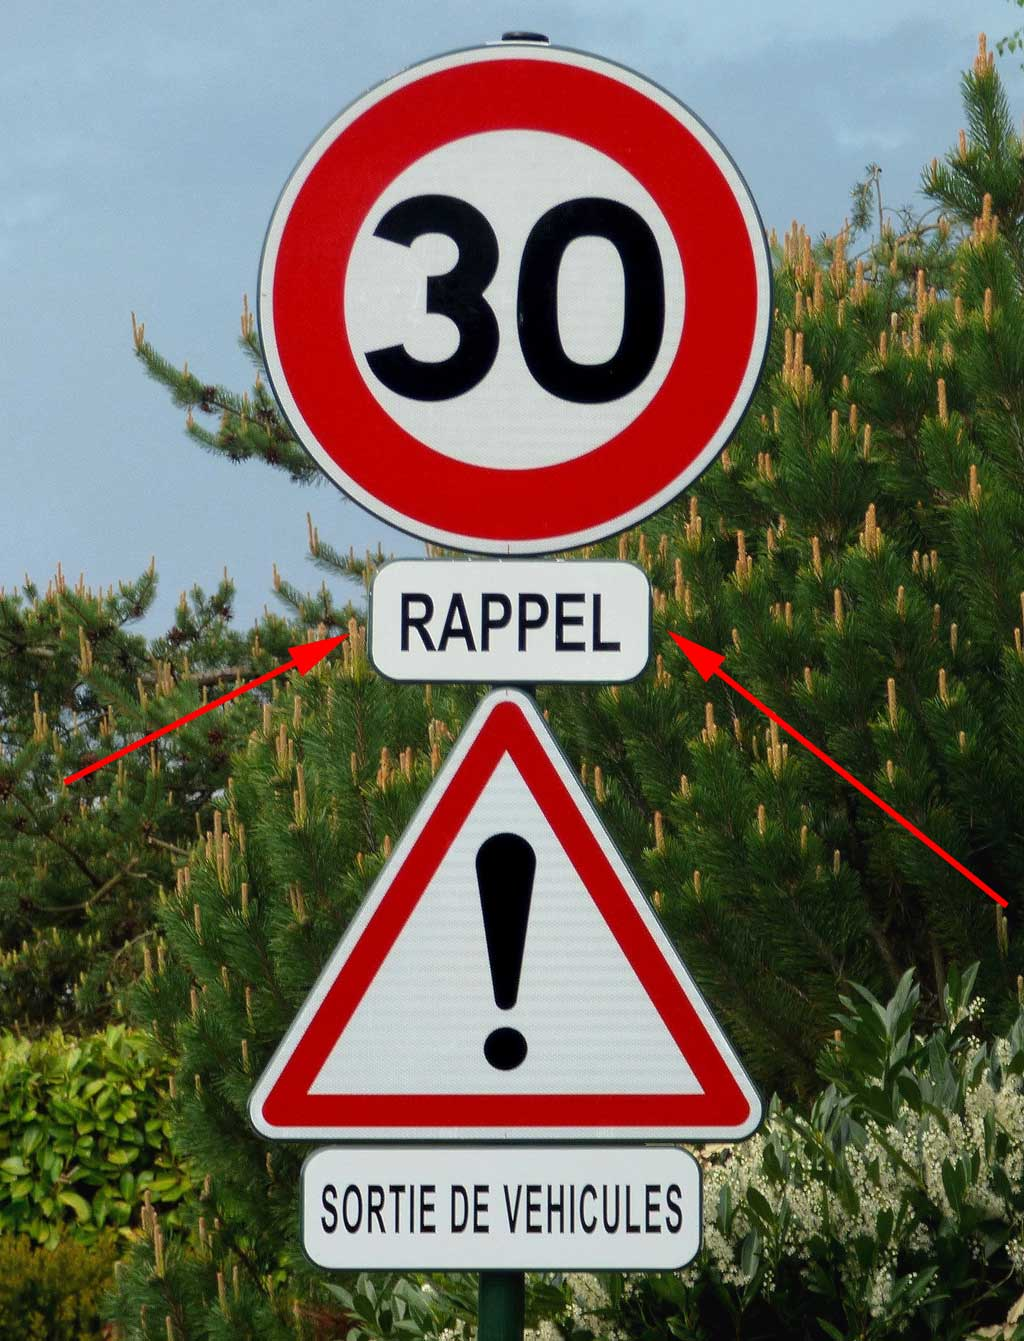 Reminder of the speed limit sign